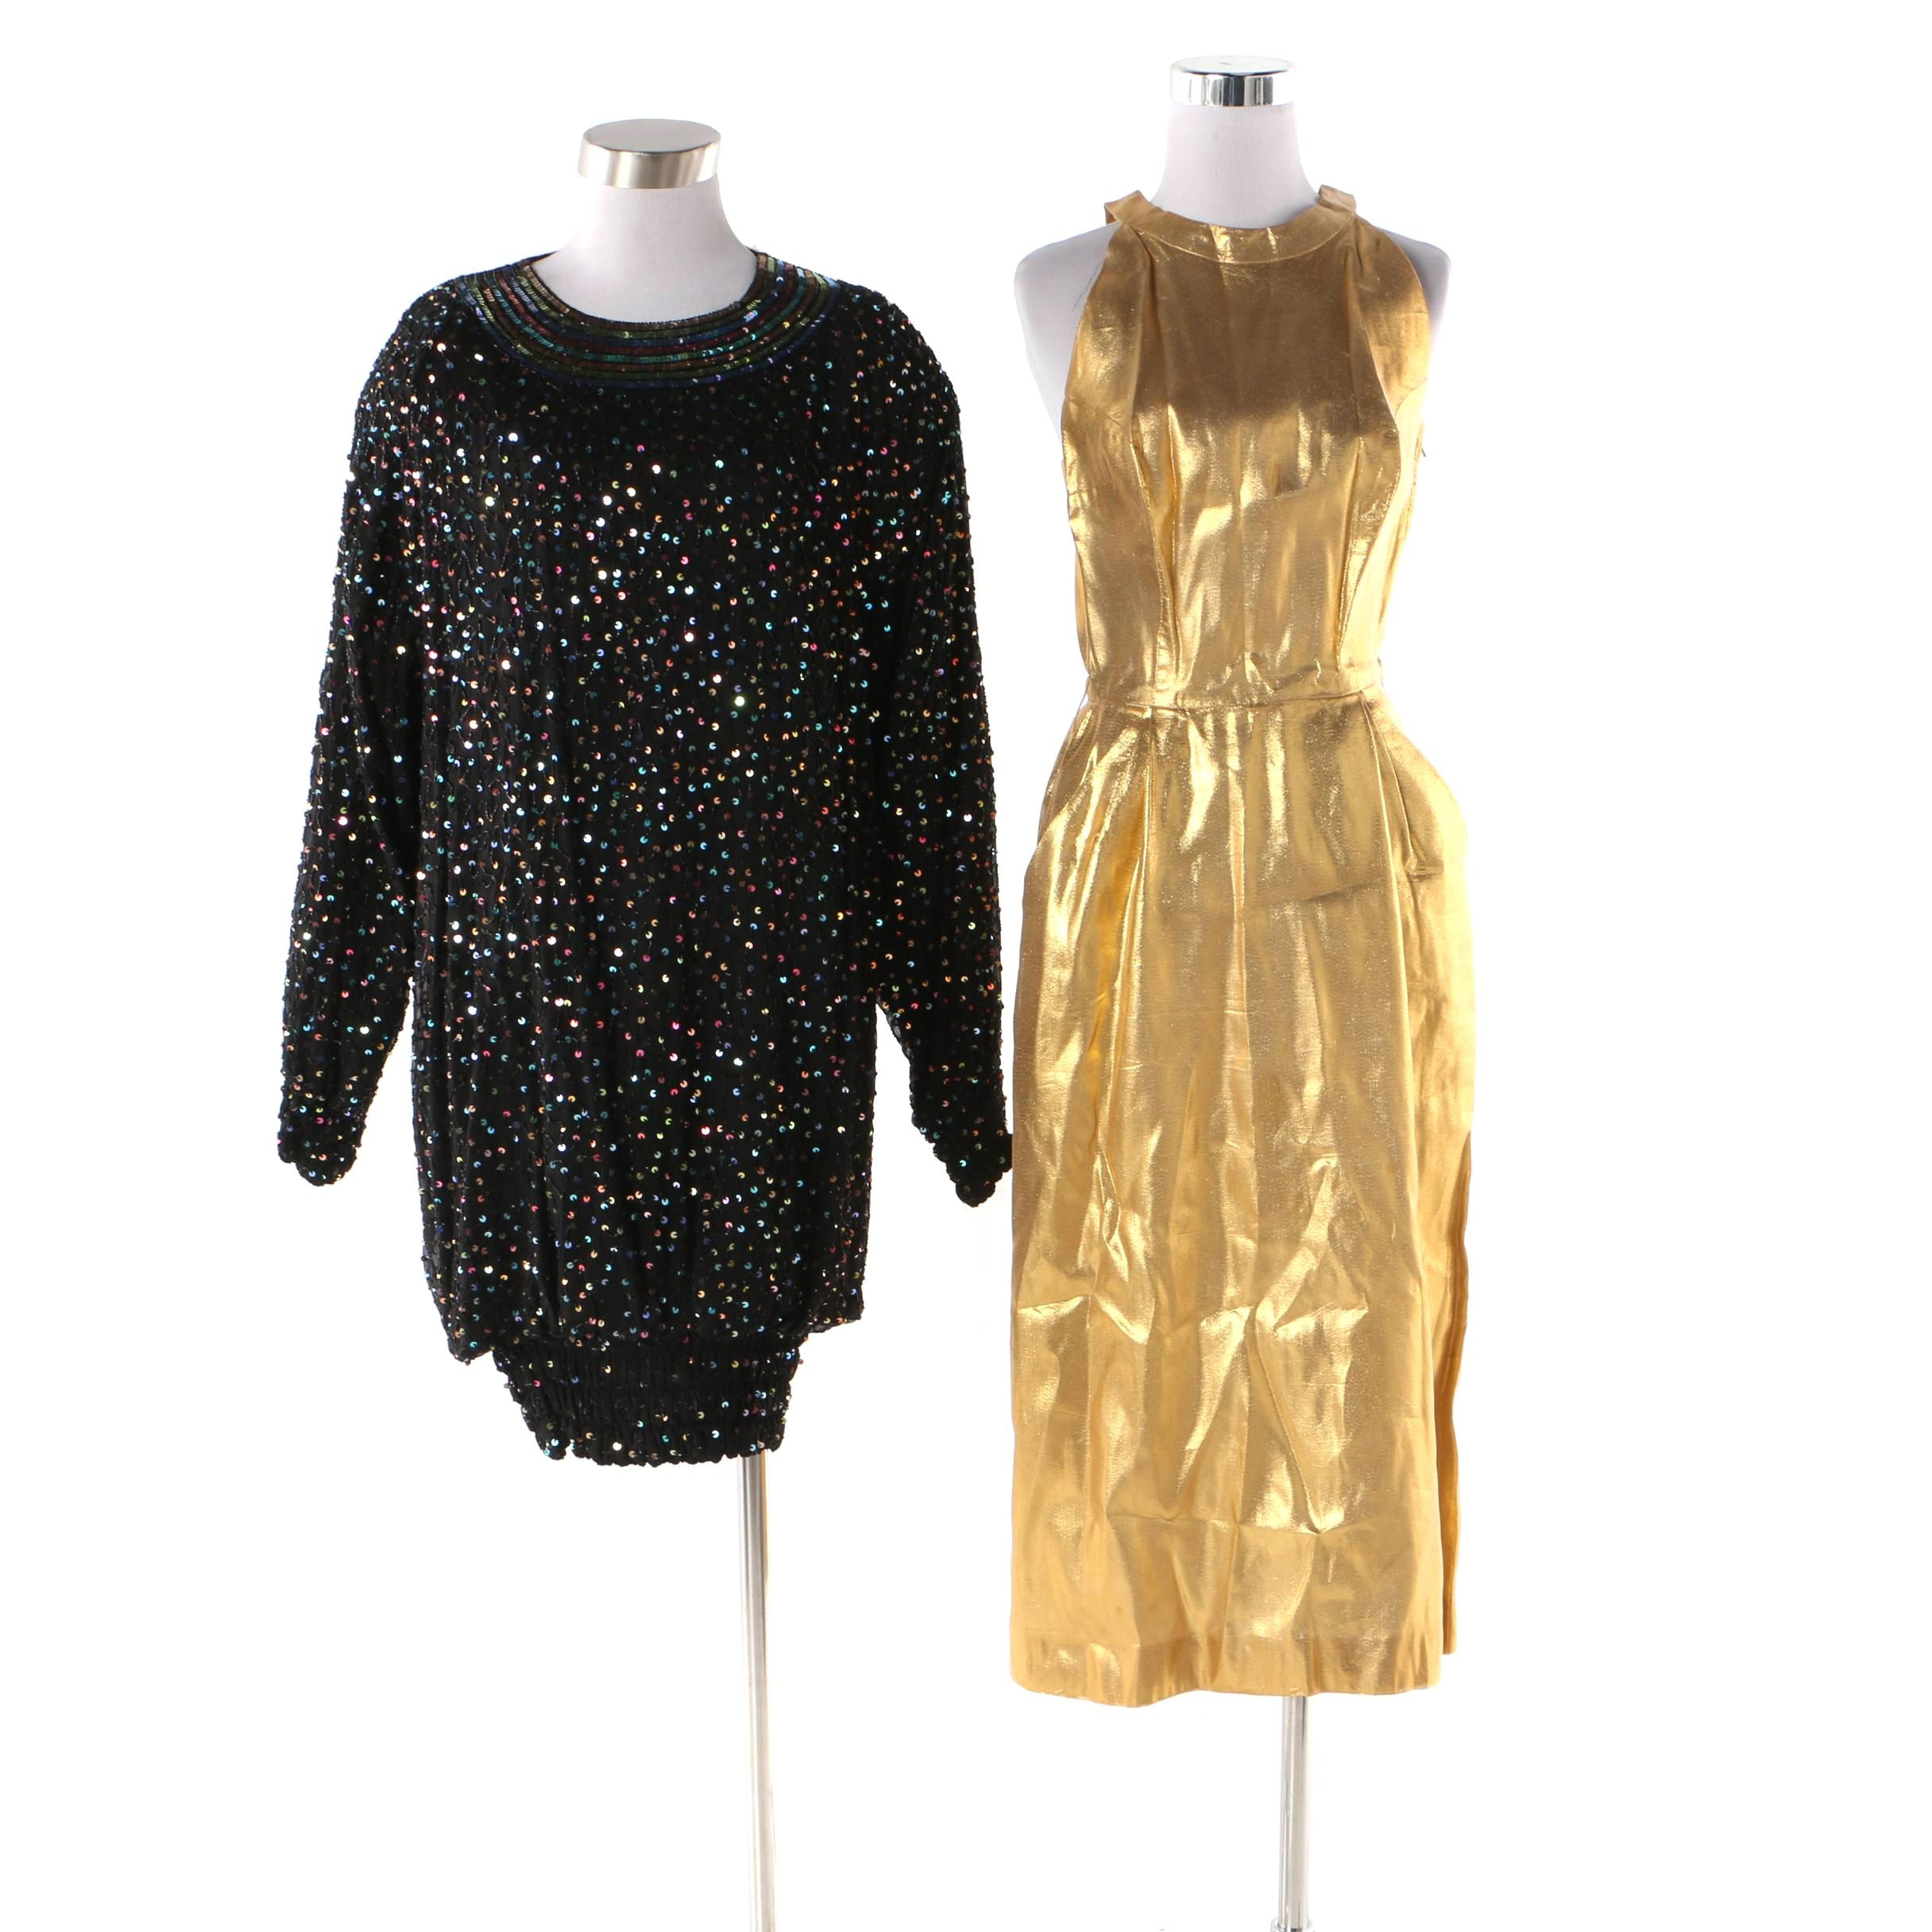 Henry Rosenfeld Gold Lamé and Saks Fifth Avenue Sequined Dresses